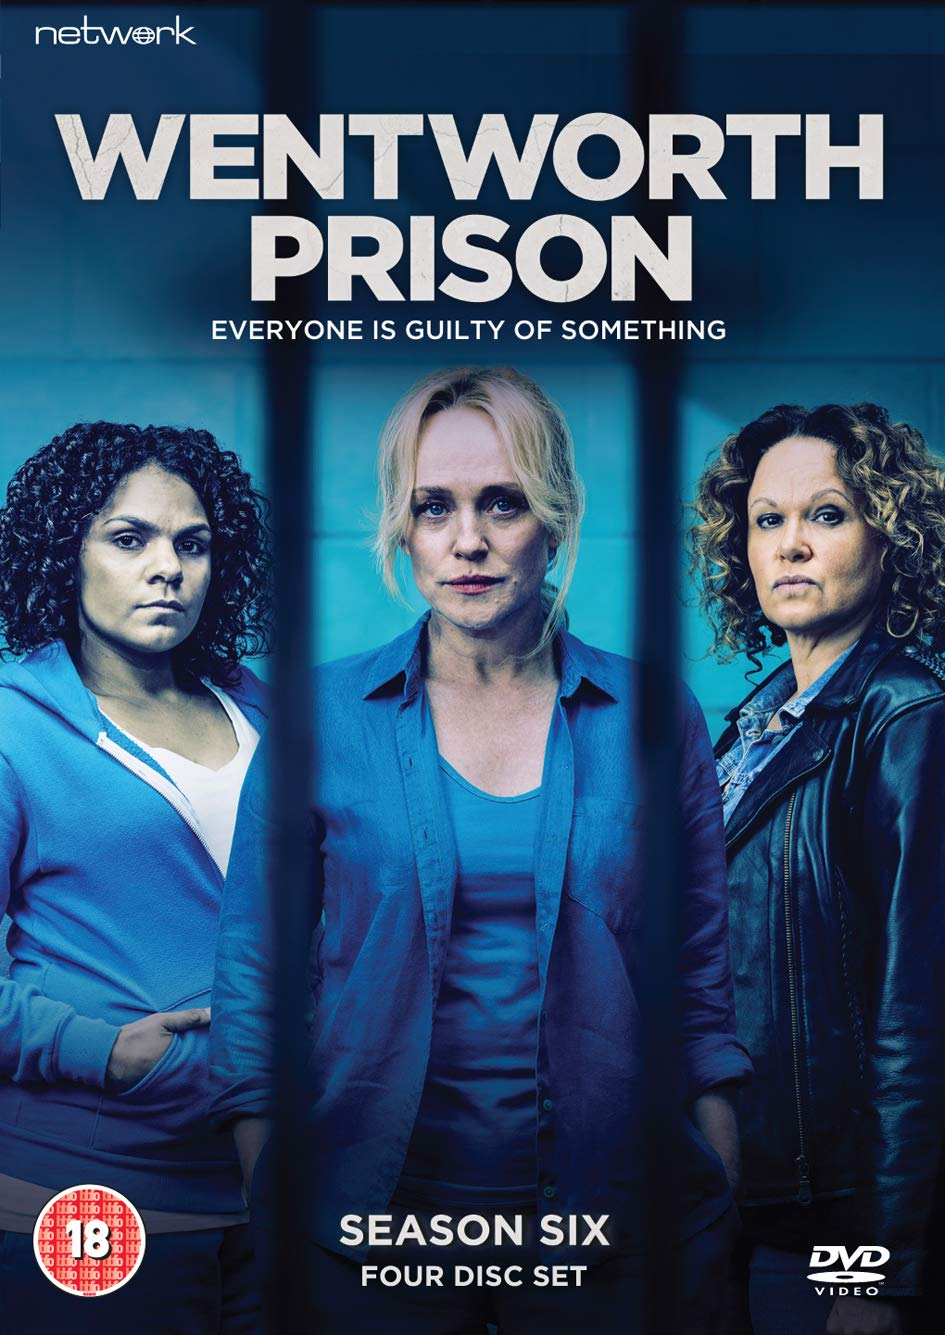 Wentworth Prison: Season Six